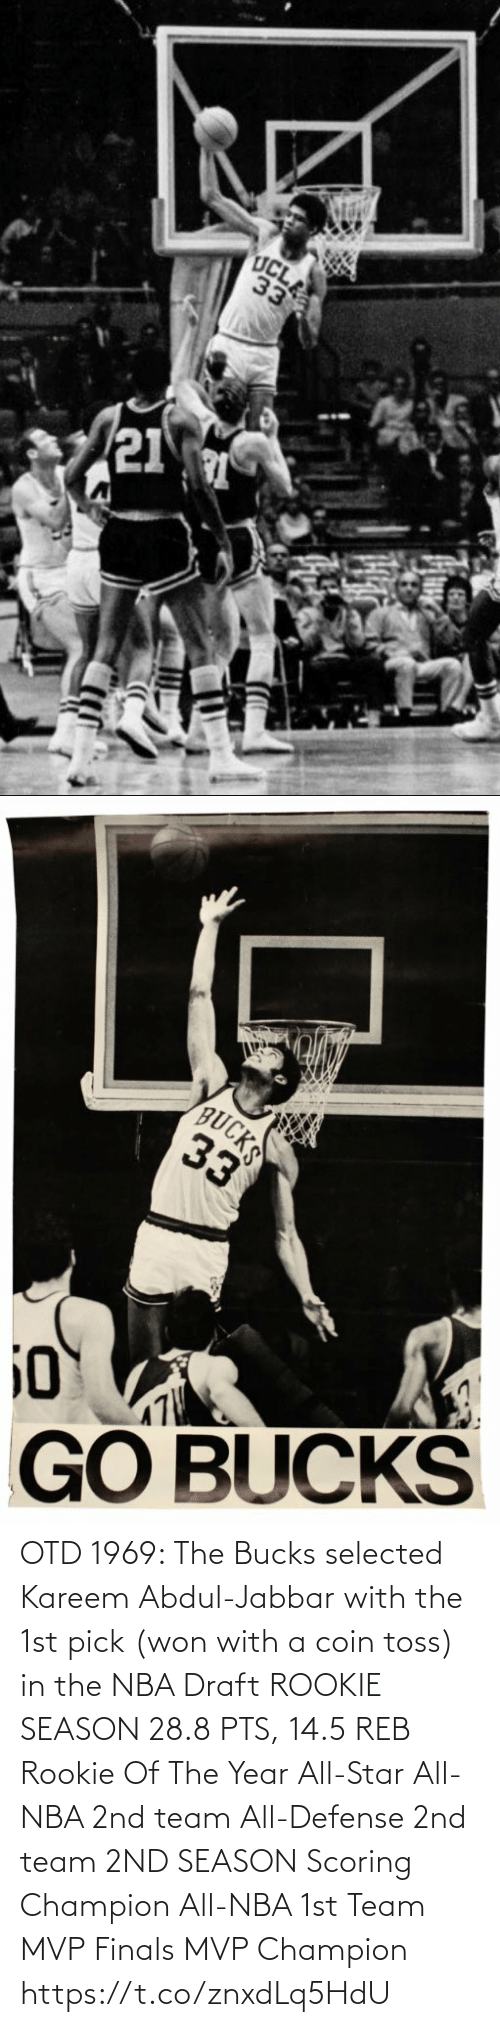 pts: OTD 1969: The Bucks selected Kareem Abdul-Jabbar with the 1st pick (won with a coin toss) in the NBA Draft   ROOKIE SEASON 28.8 PTS, 14.5 REB Rookie Of The Year All-Star All-NBA 2nd team All-Defense 2nd team  2ND SEASON Scoring Champion All-NBA 1st Team MVP Finals MVP Champion https://t.co/znxdLq5HdU